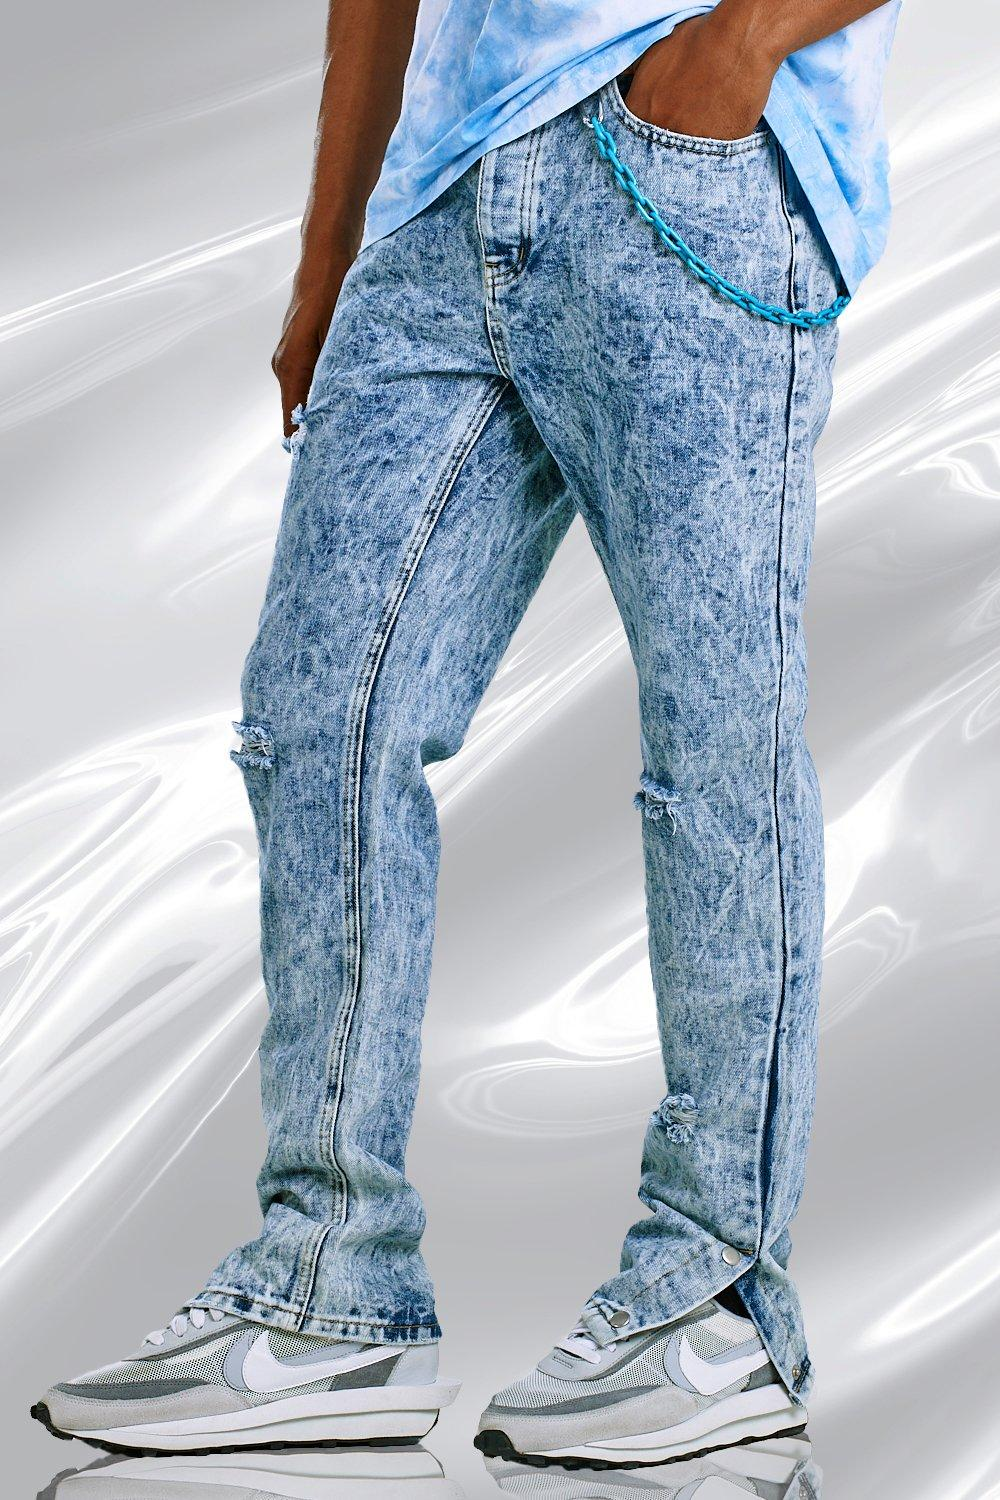 1980s Clothing, Fashion | 80s Style Clothes Mens Skinny Split Hem Bleached Jeans With Plastic Chain - Blue $24.00 AT vintagedancer.com